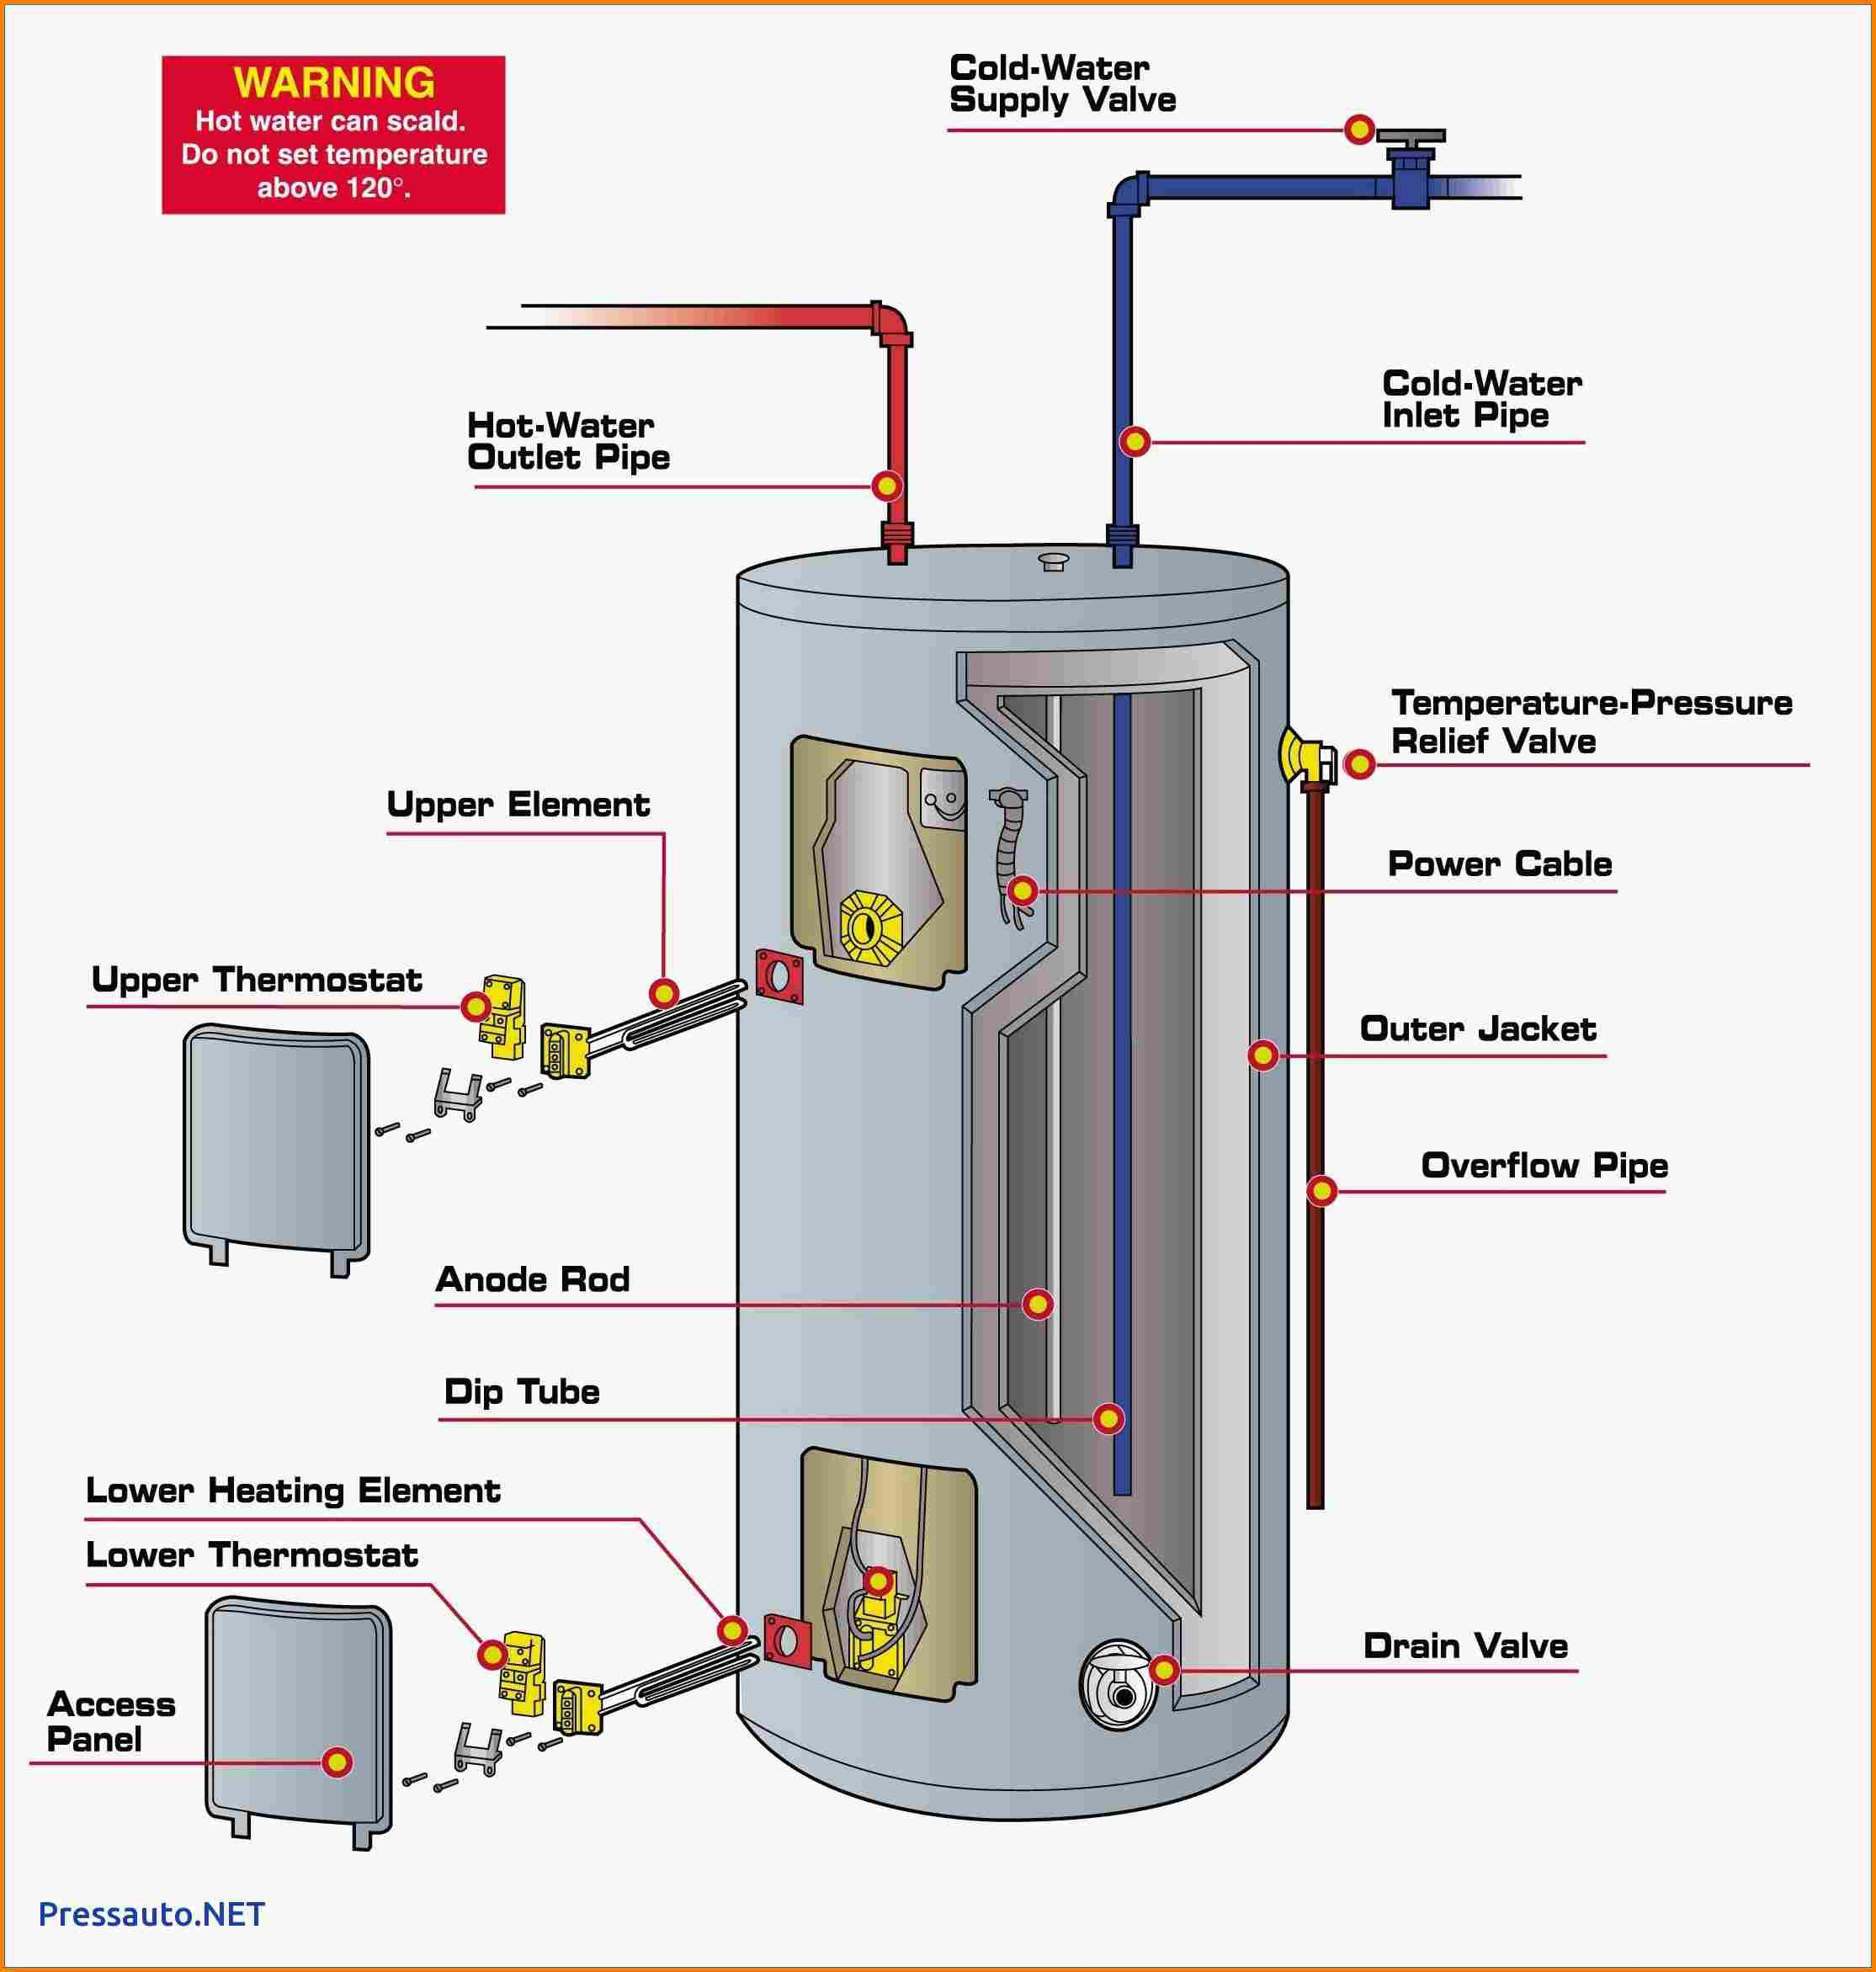 110 Water Heater Thermostat Wiring Diagram | Manual E-Books - Electric Water Heater Thermostat Wiring Diagram